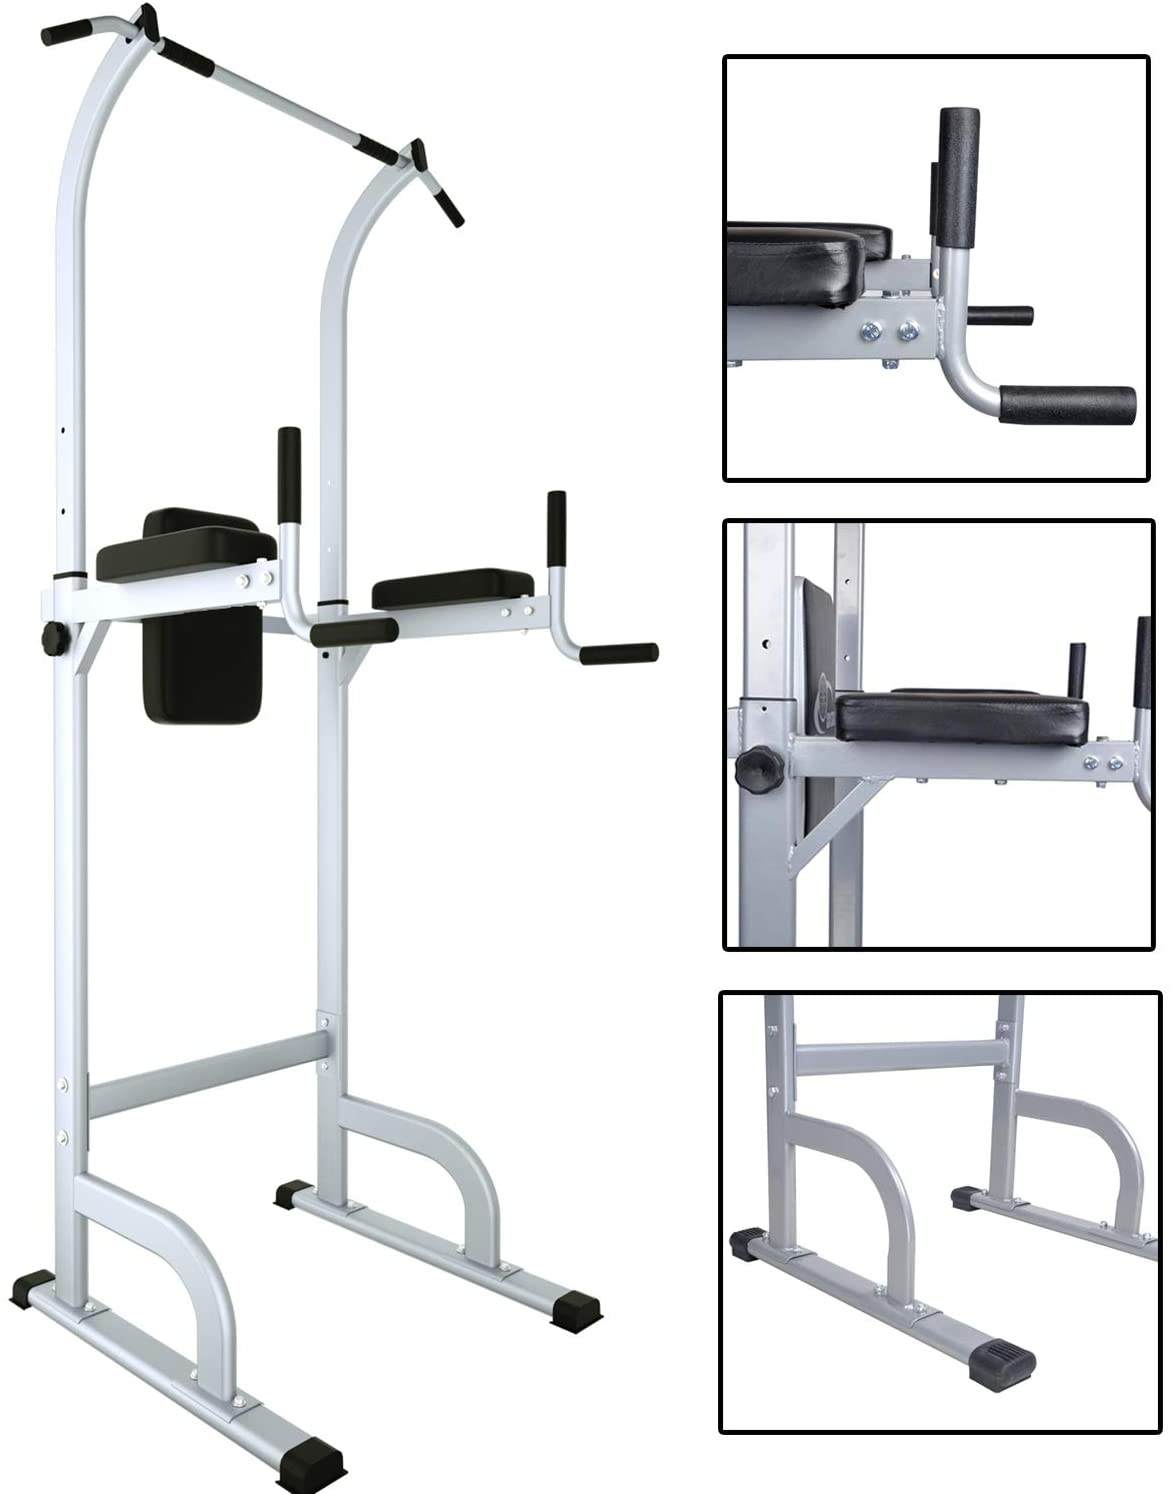 Power Tower,Adjustable Height Dip Stands Multi-Function Pull Up Bar Standing Tower Gym Equipment Sports